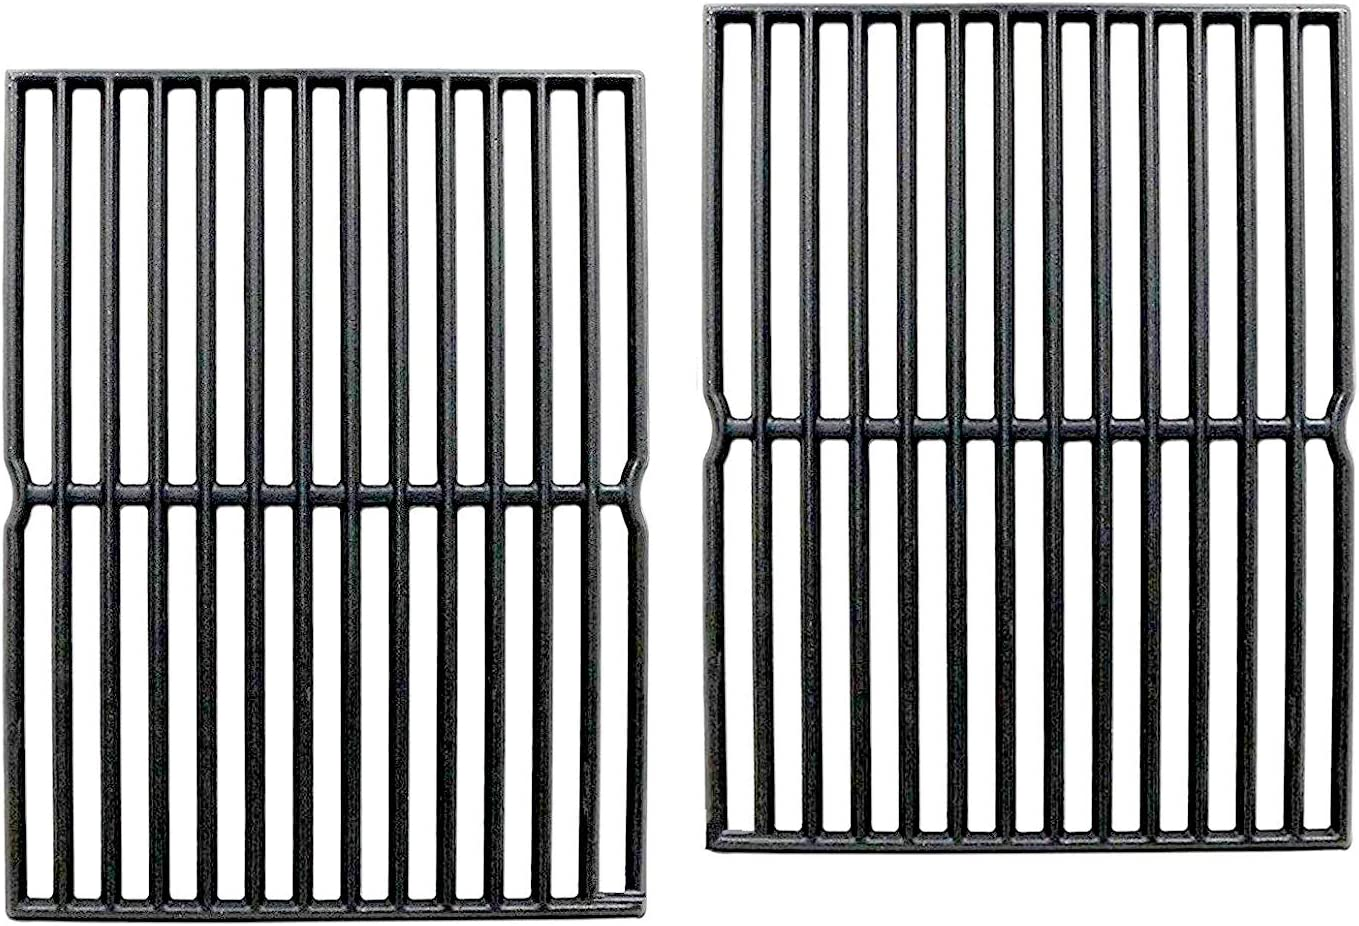 Votenli C752B Year-end gift 2-Pack 15 Inch Cast Iron Cooking service Grates Grid Repl